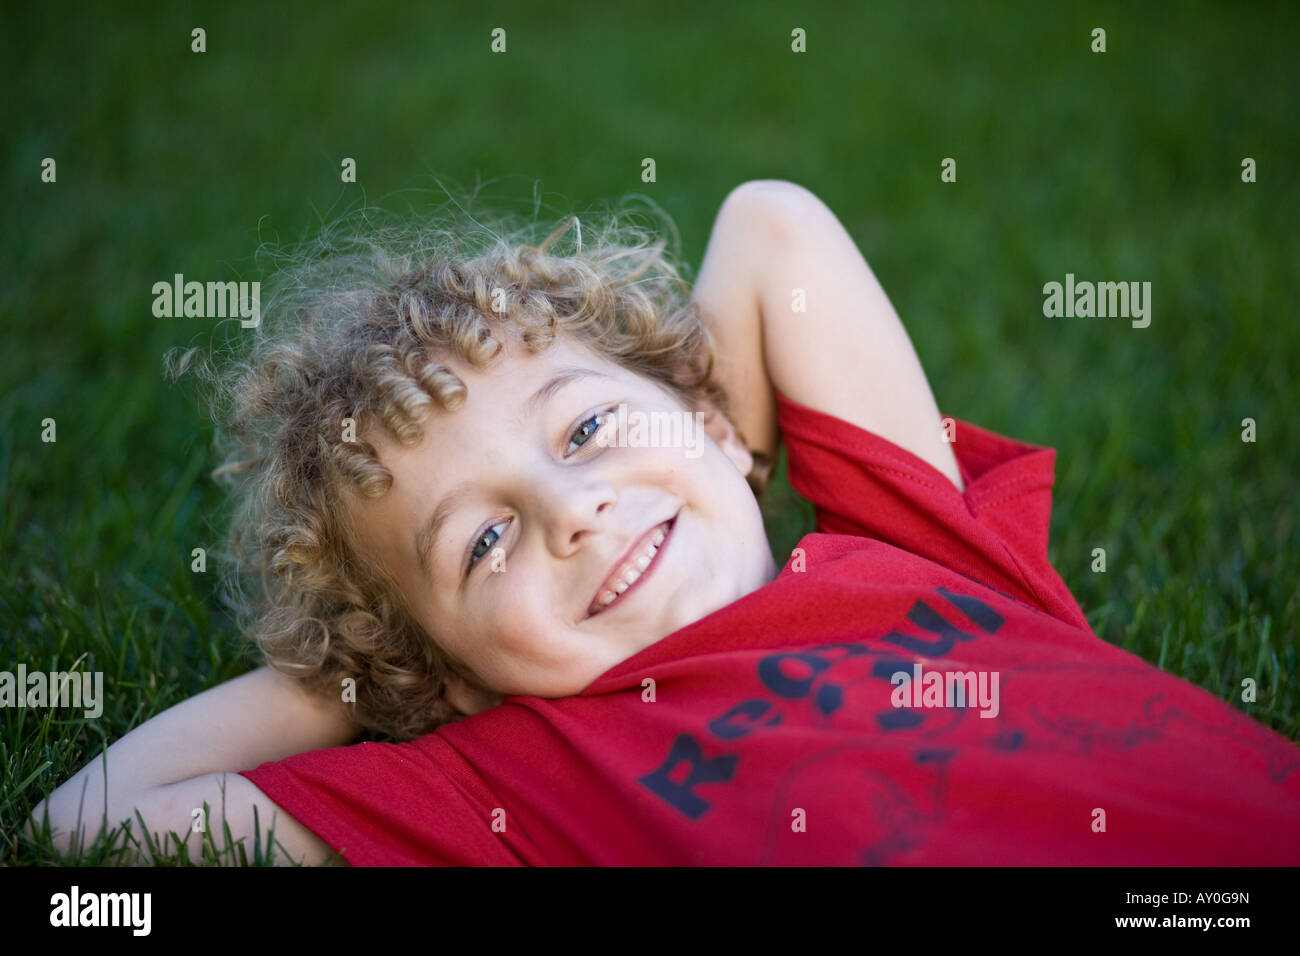 Young blonde haired boy with curly hair lying in the grass. - Stock Image